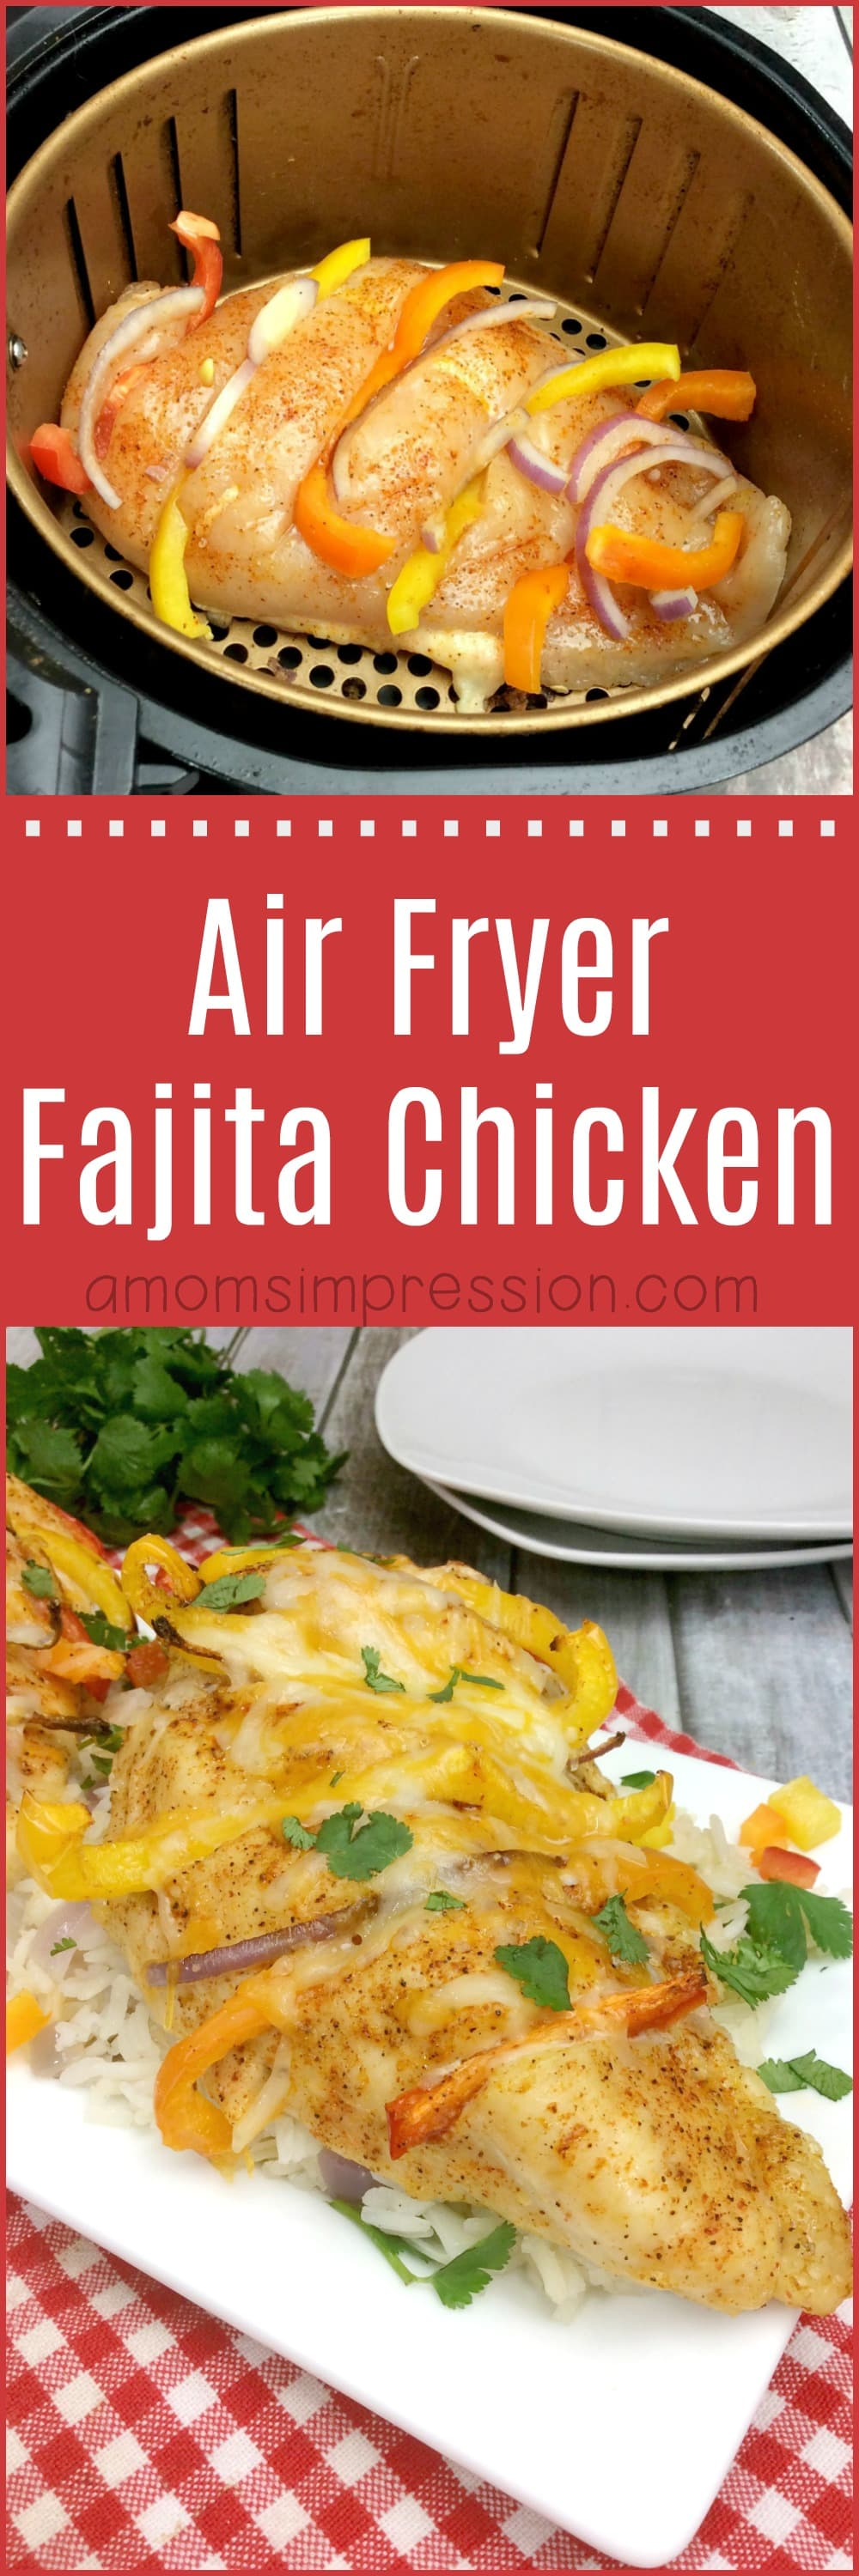 The easiest air fryer fajita chicken recipe